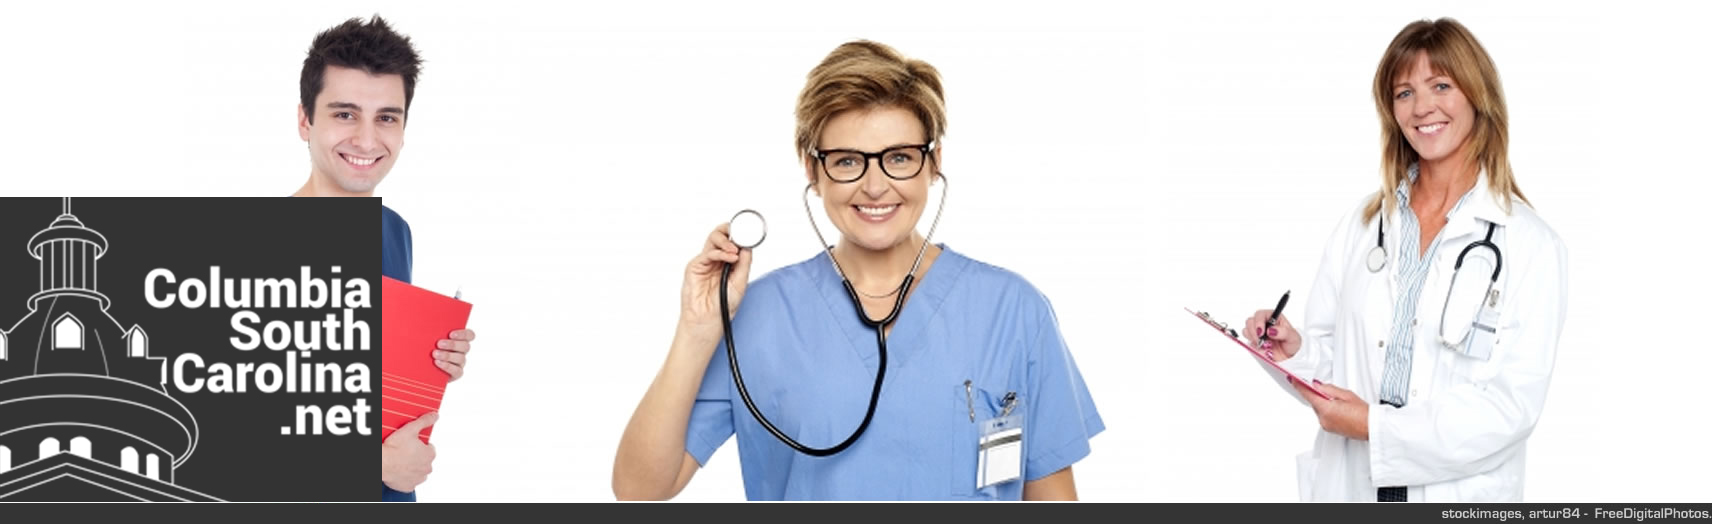 Friendly doctors and nurses in Columbia South Carolina